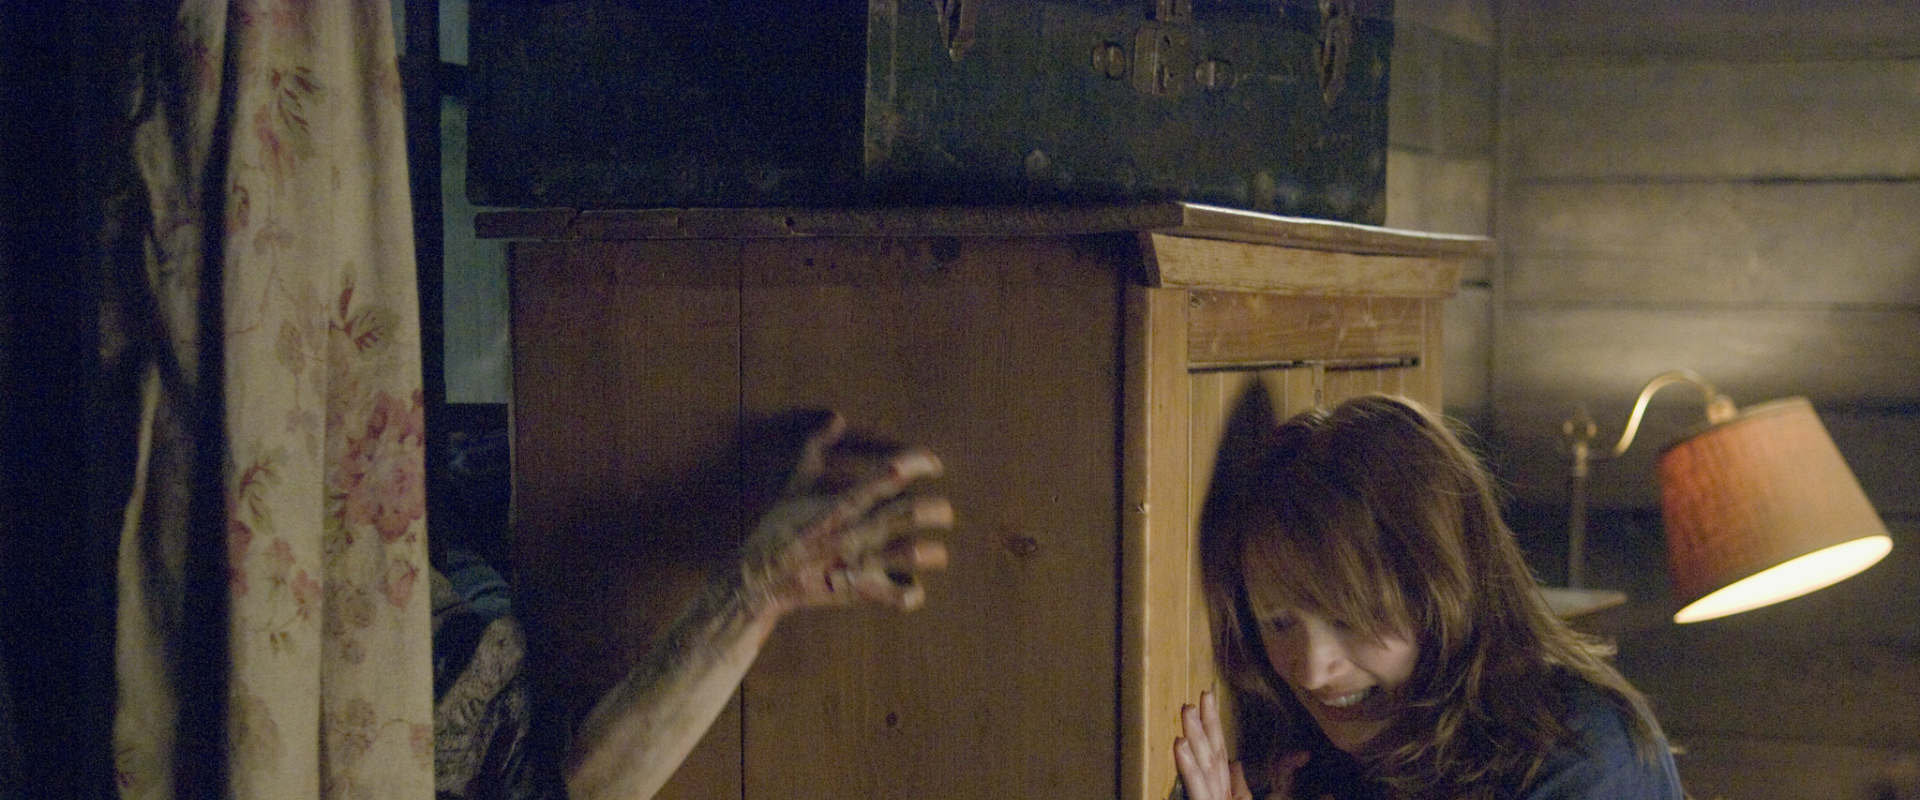 Watch The Cabin In The Woods On Netflix Today